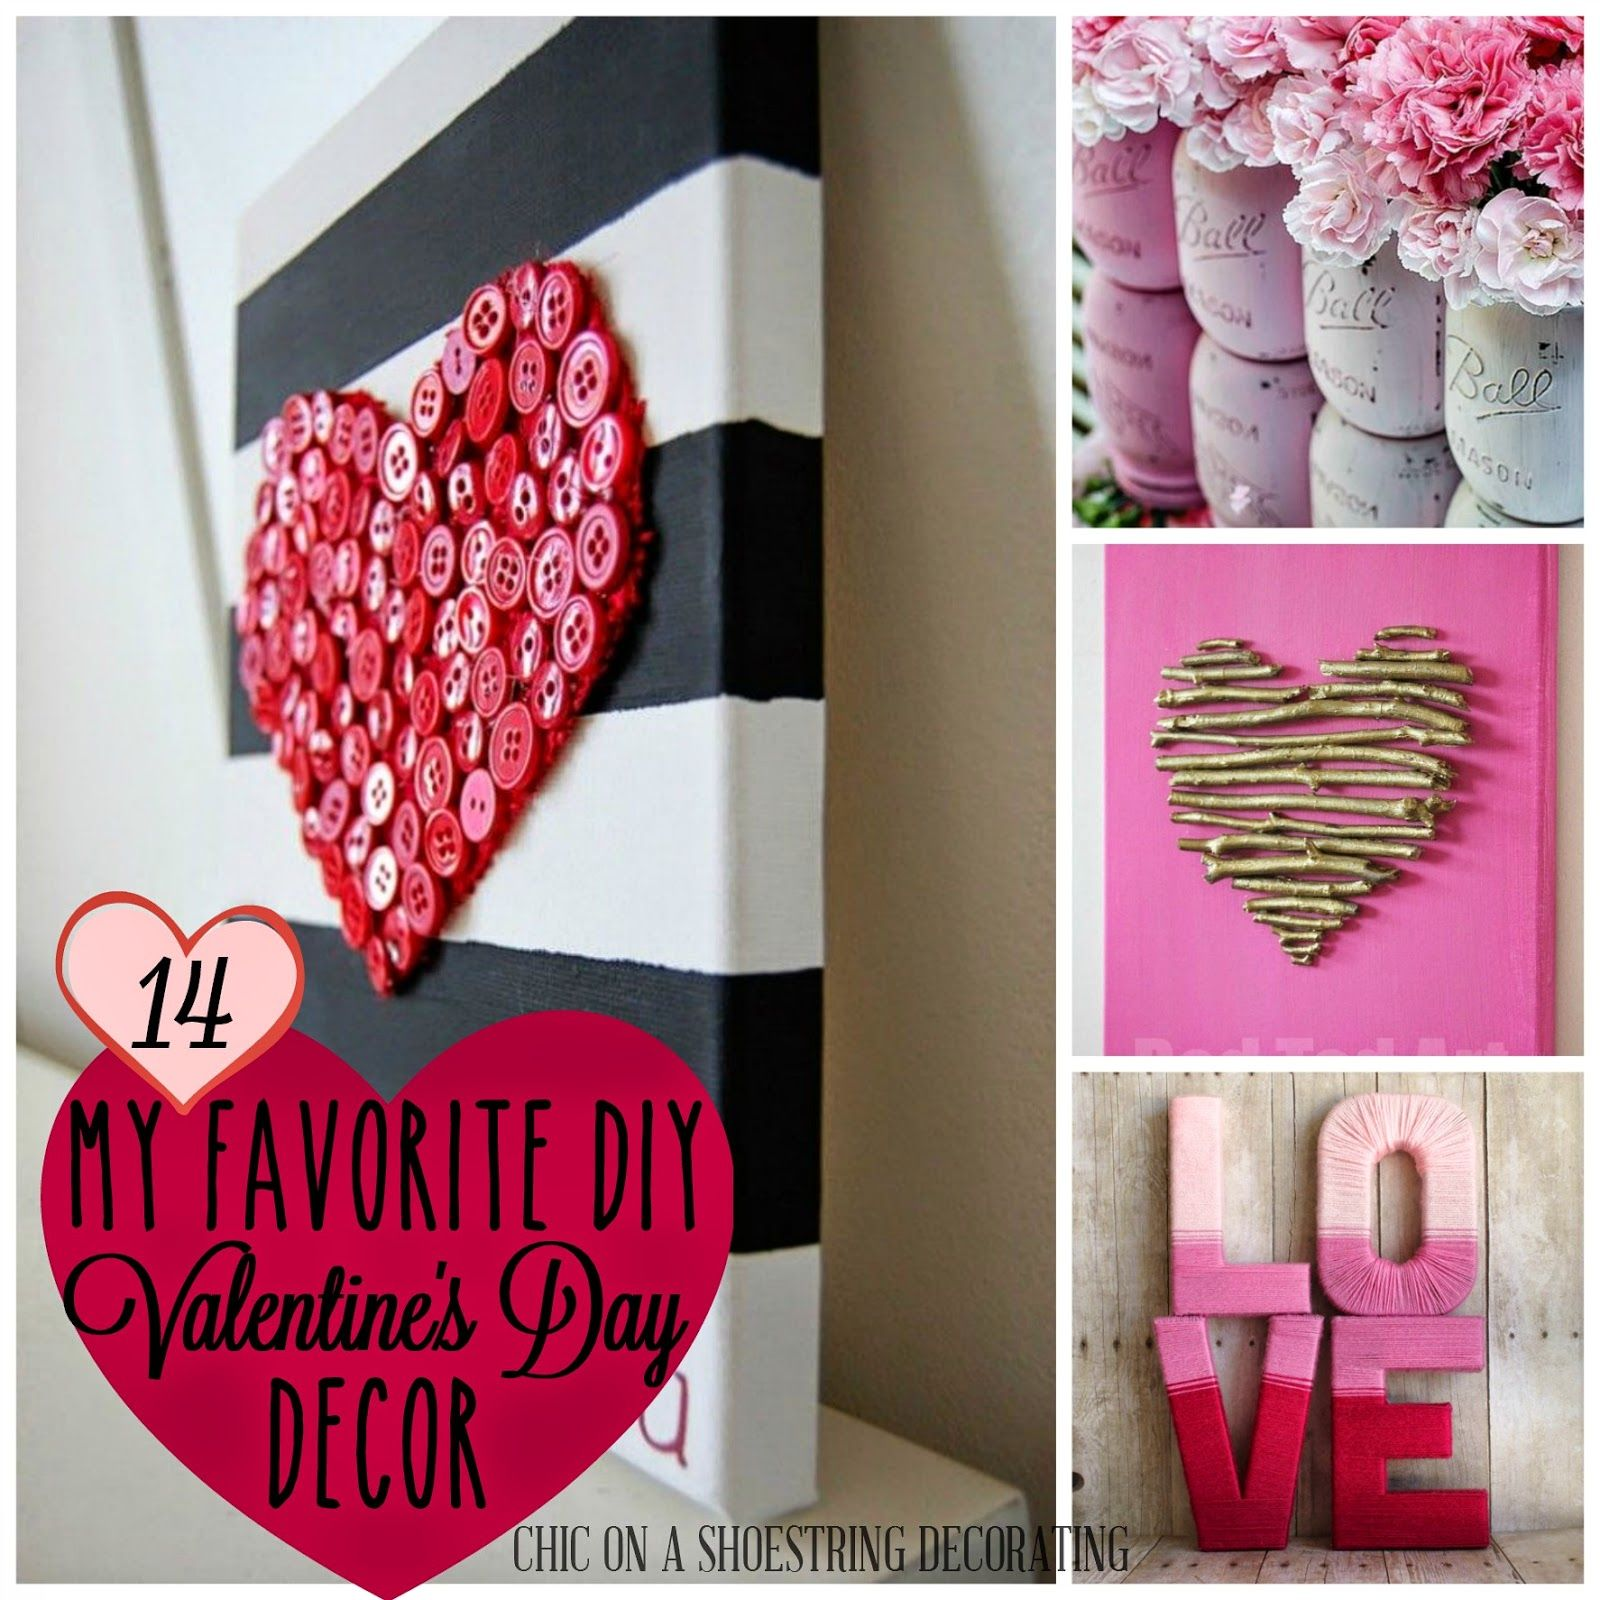 My 14 Favorite DIY Valentineu0027s Day Decor Ideas Ideas By Chic On A  Shoestring Decorating